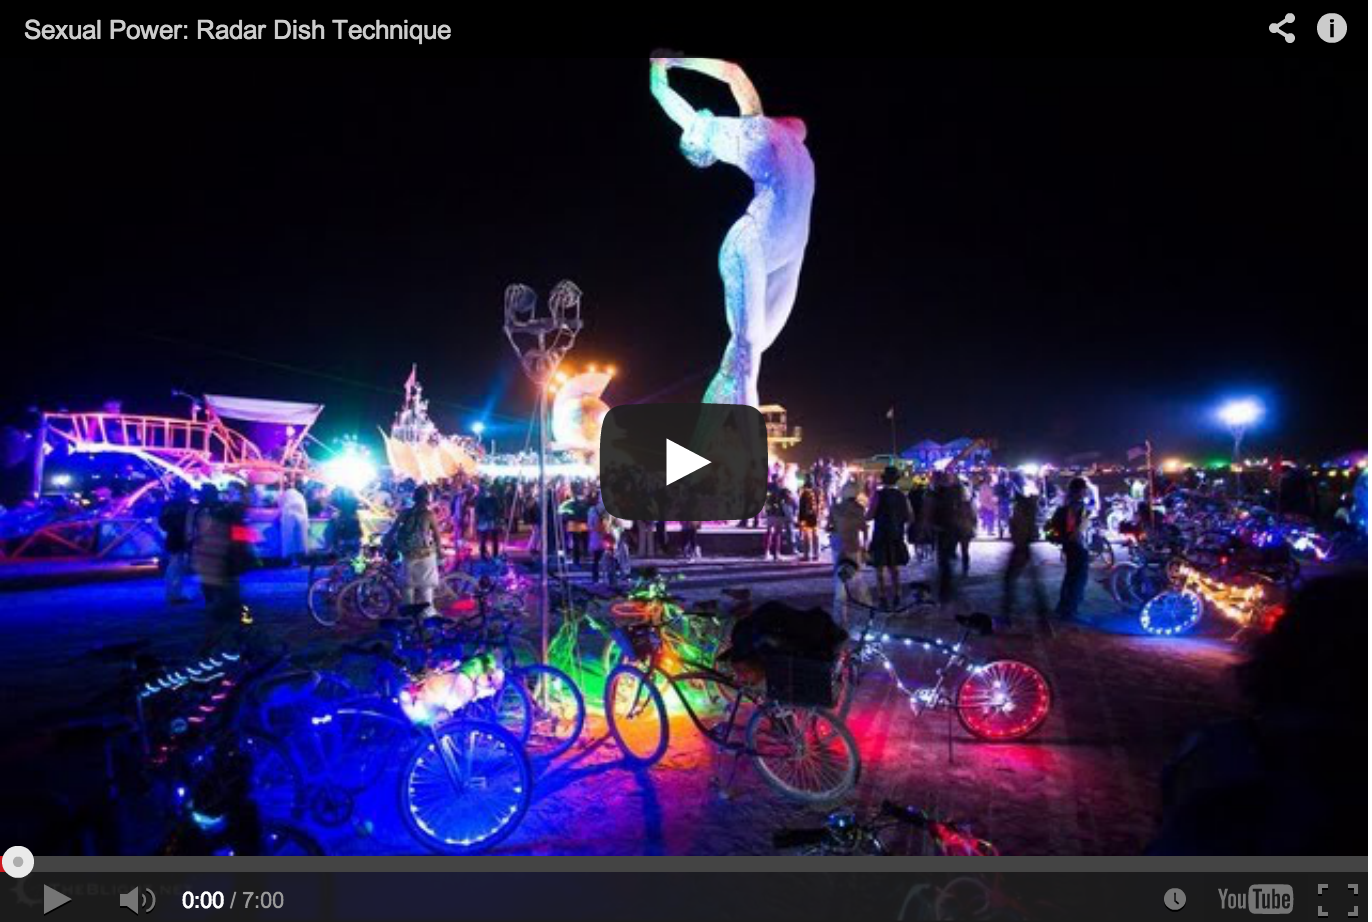 sexual power in committed relationships from burning man